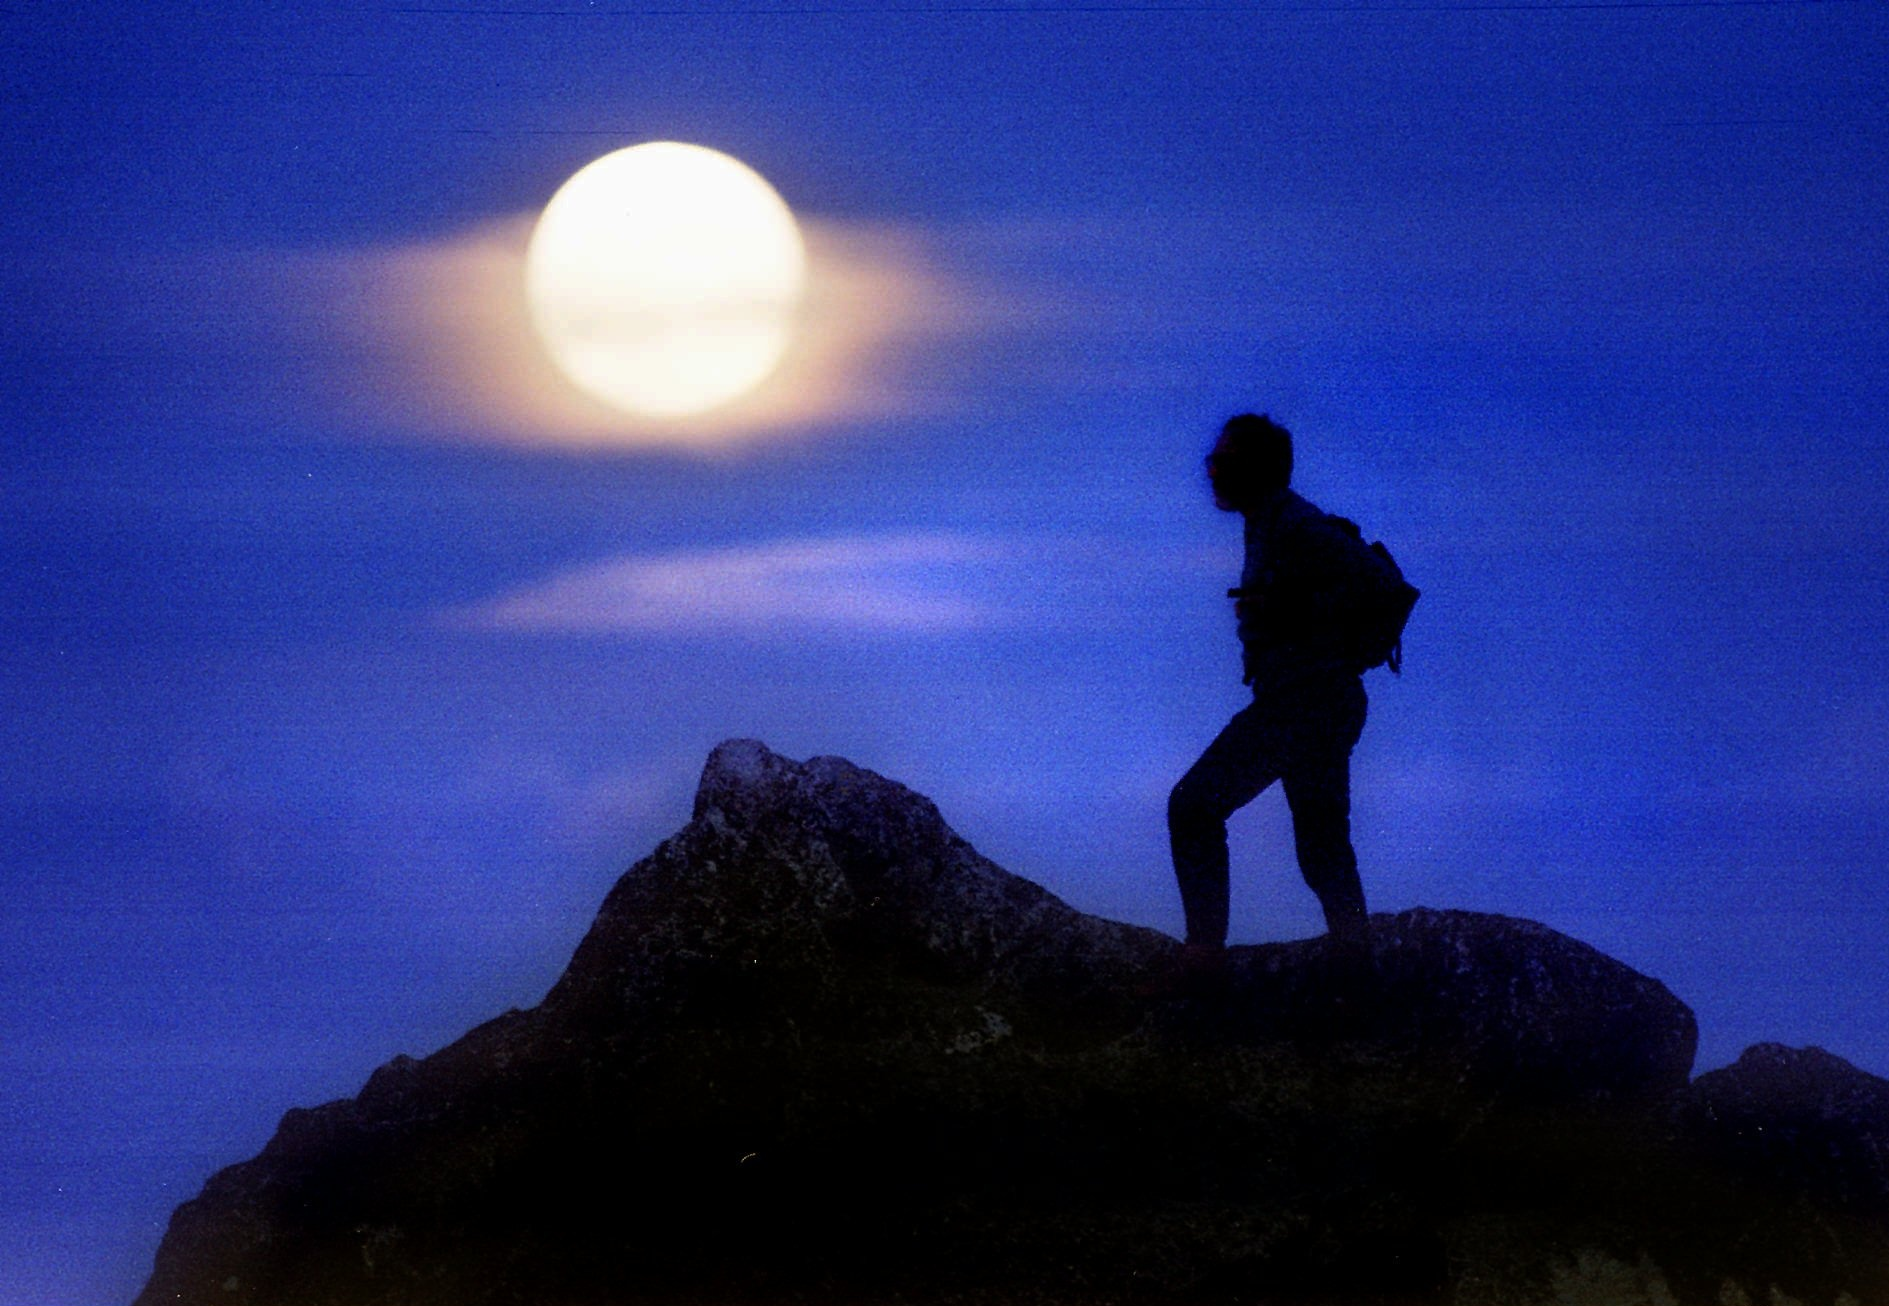 ADVANCE FOR WEEKEND EDITIONS SEPT. 7-8 -- A moonlit hiker crosses a ridge near the summit of Mt. Ashland near Ashland, Ore., in July, 1996, during a full moon. (AP Photo/Mail Tribune, Bob Pennell)